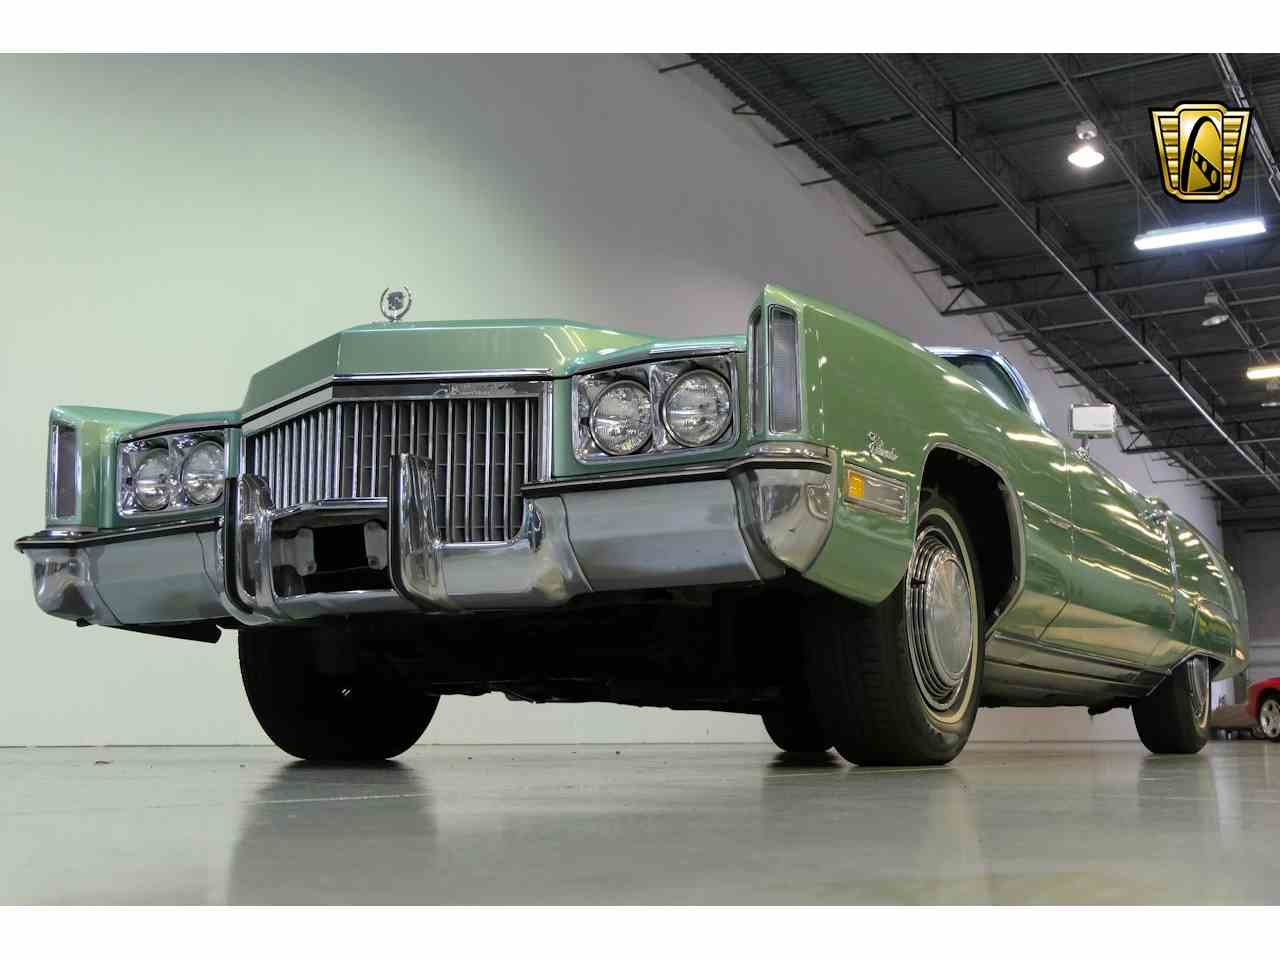 Large Picture of '72 Cadillac Eldorado located in Florida Offered by Gateway Classic Cars - Orlando - NEP5